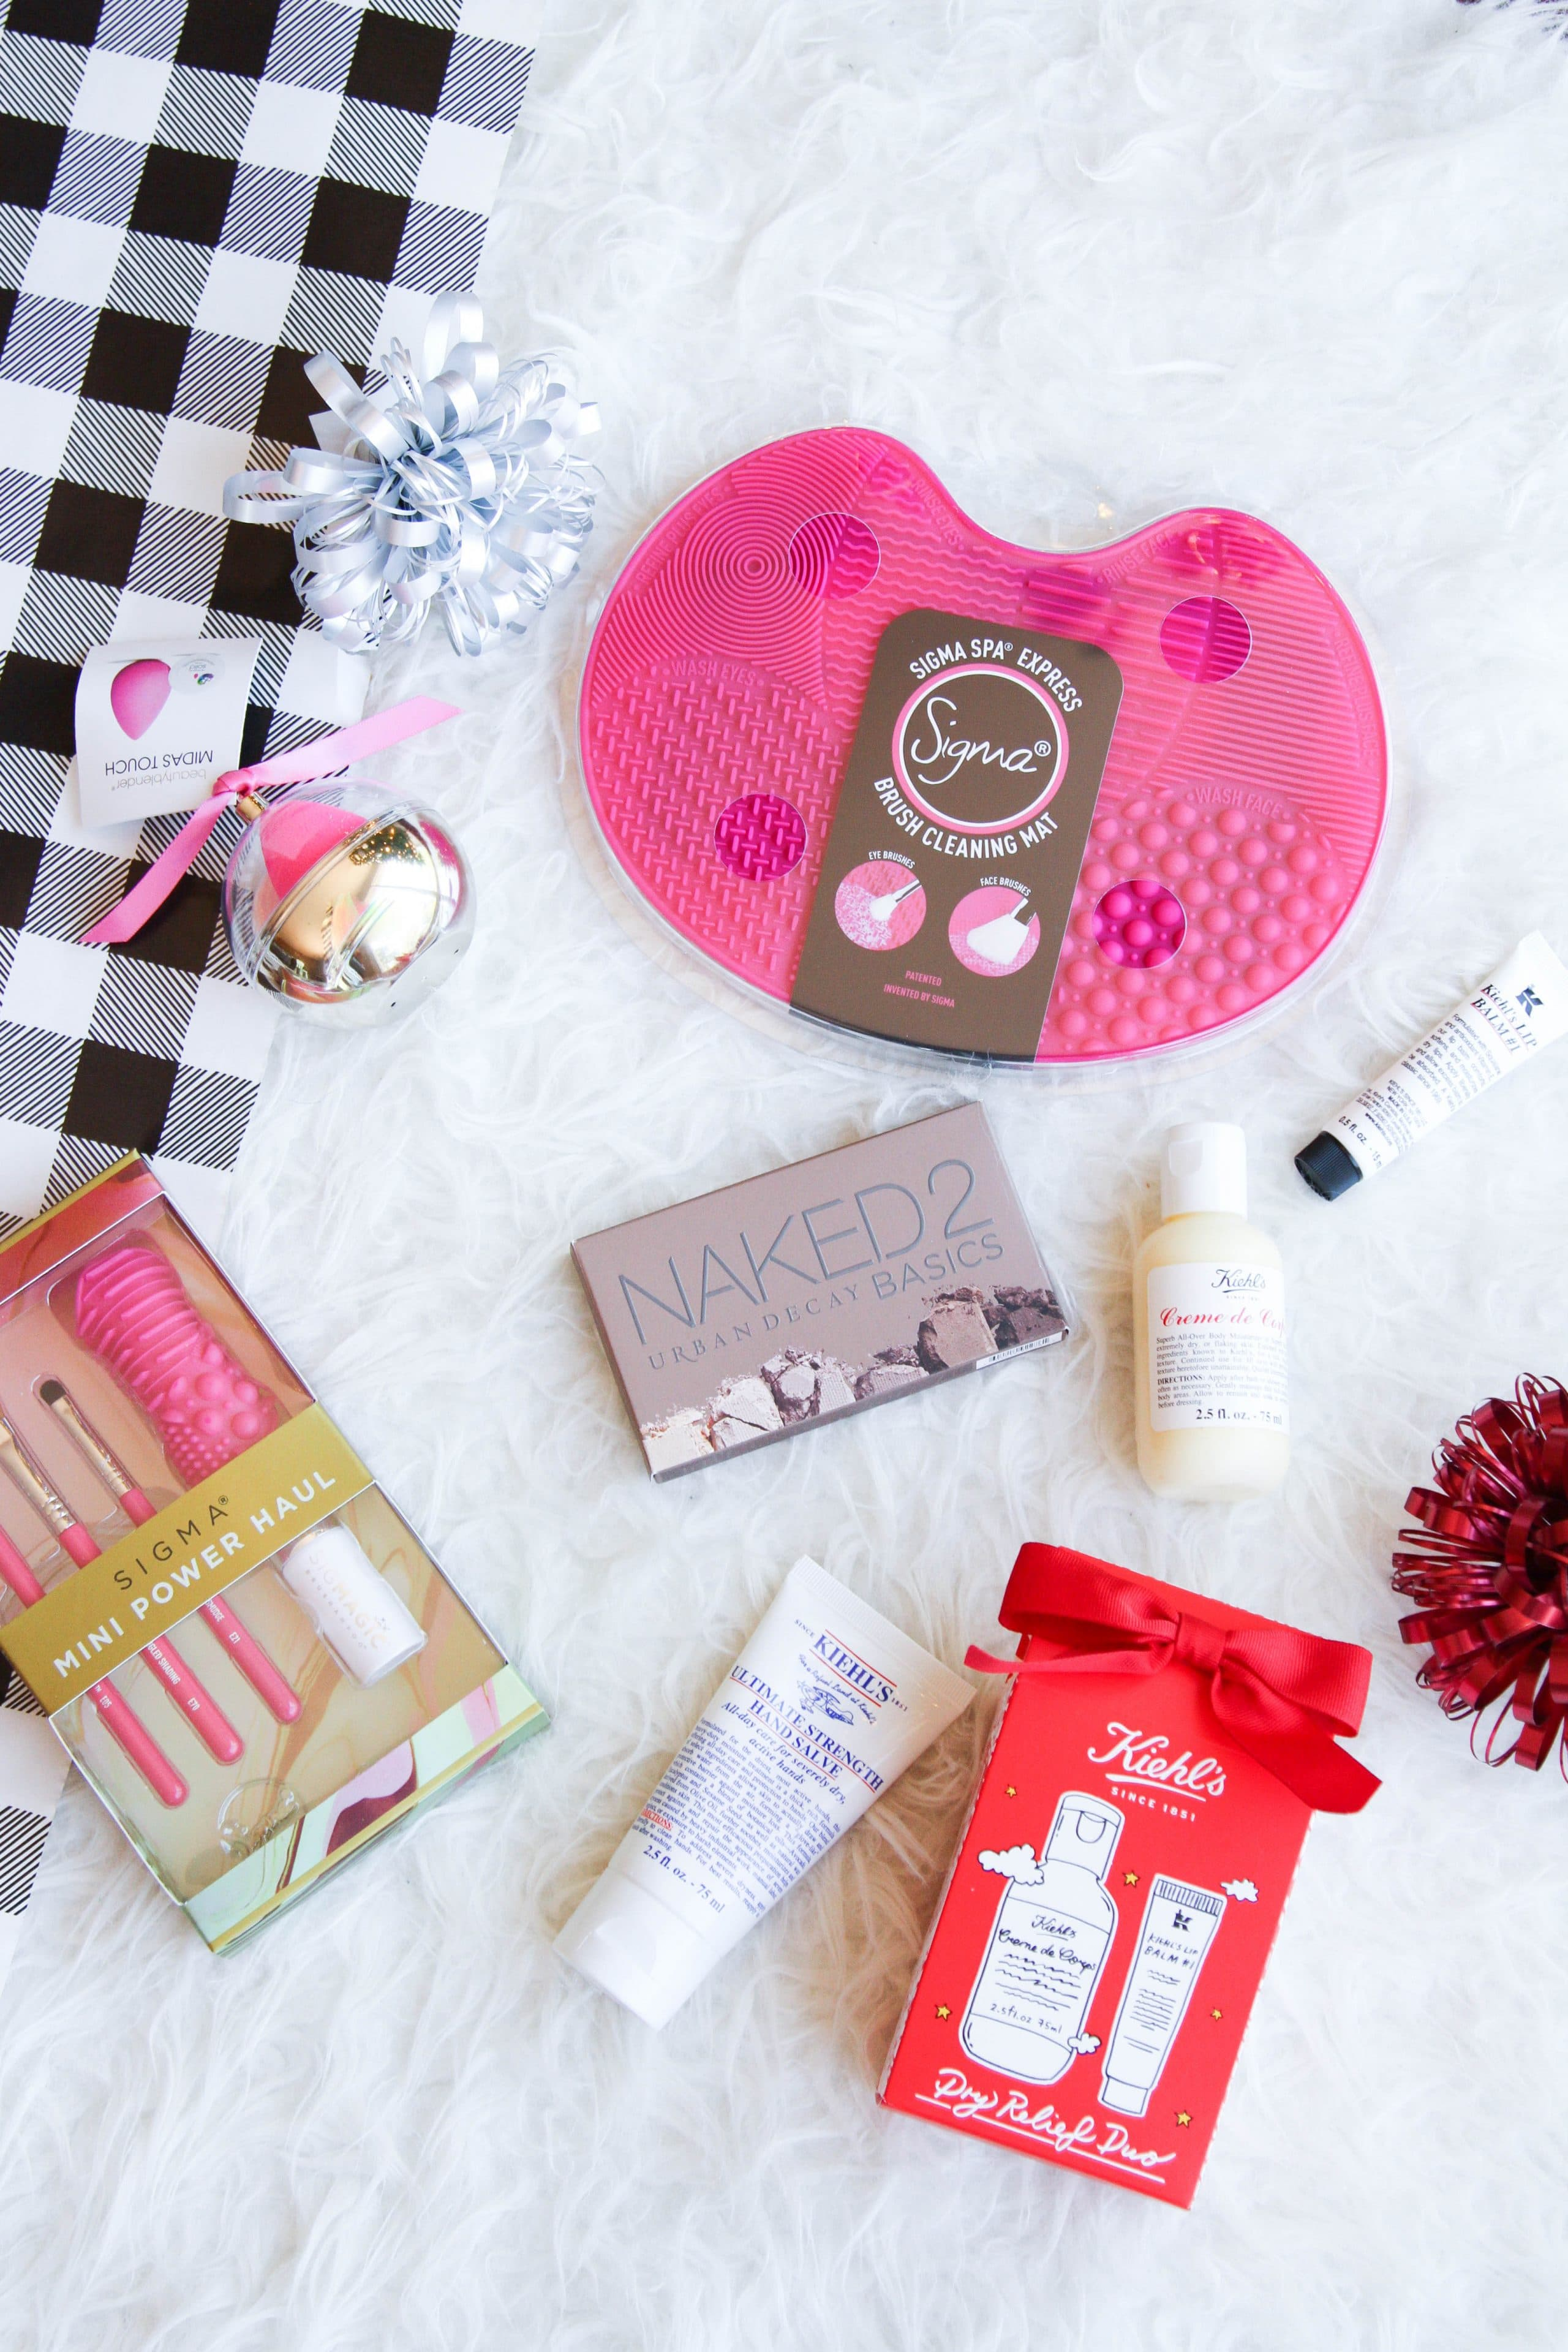 Great beauty gifts